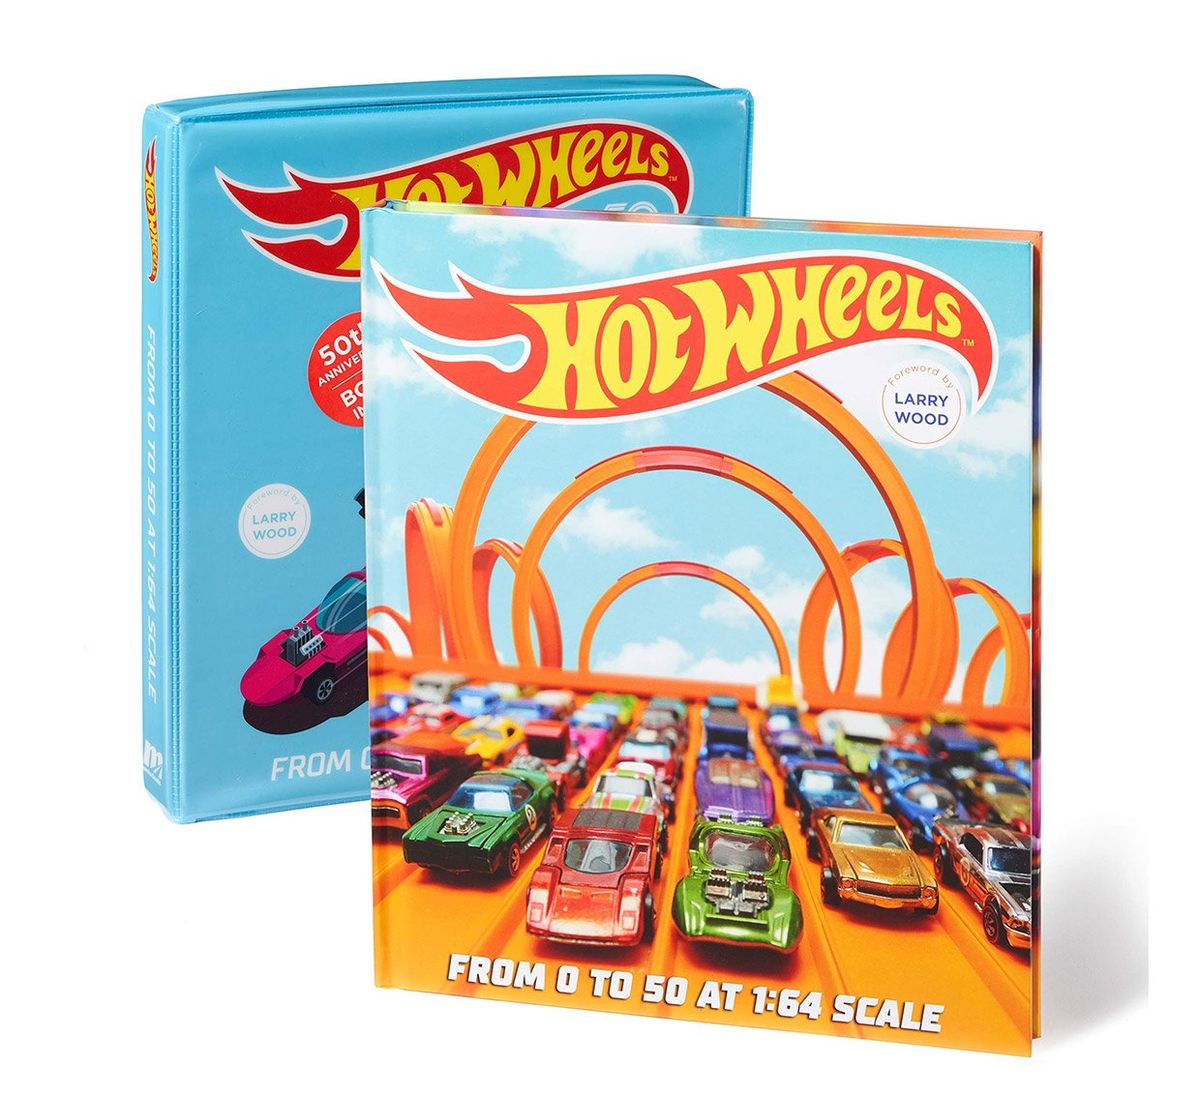 Book Chronicles the History of Hot Wheels